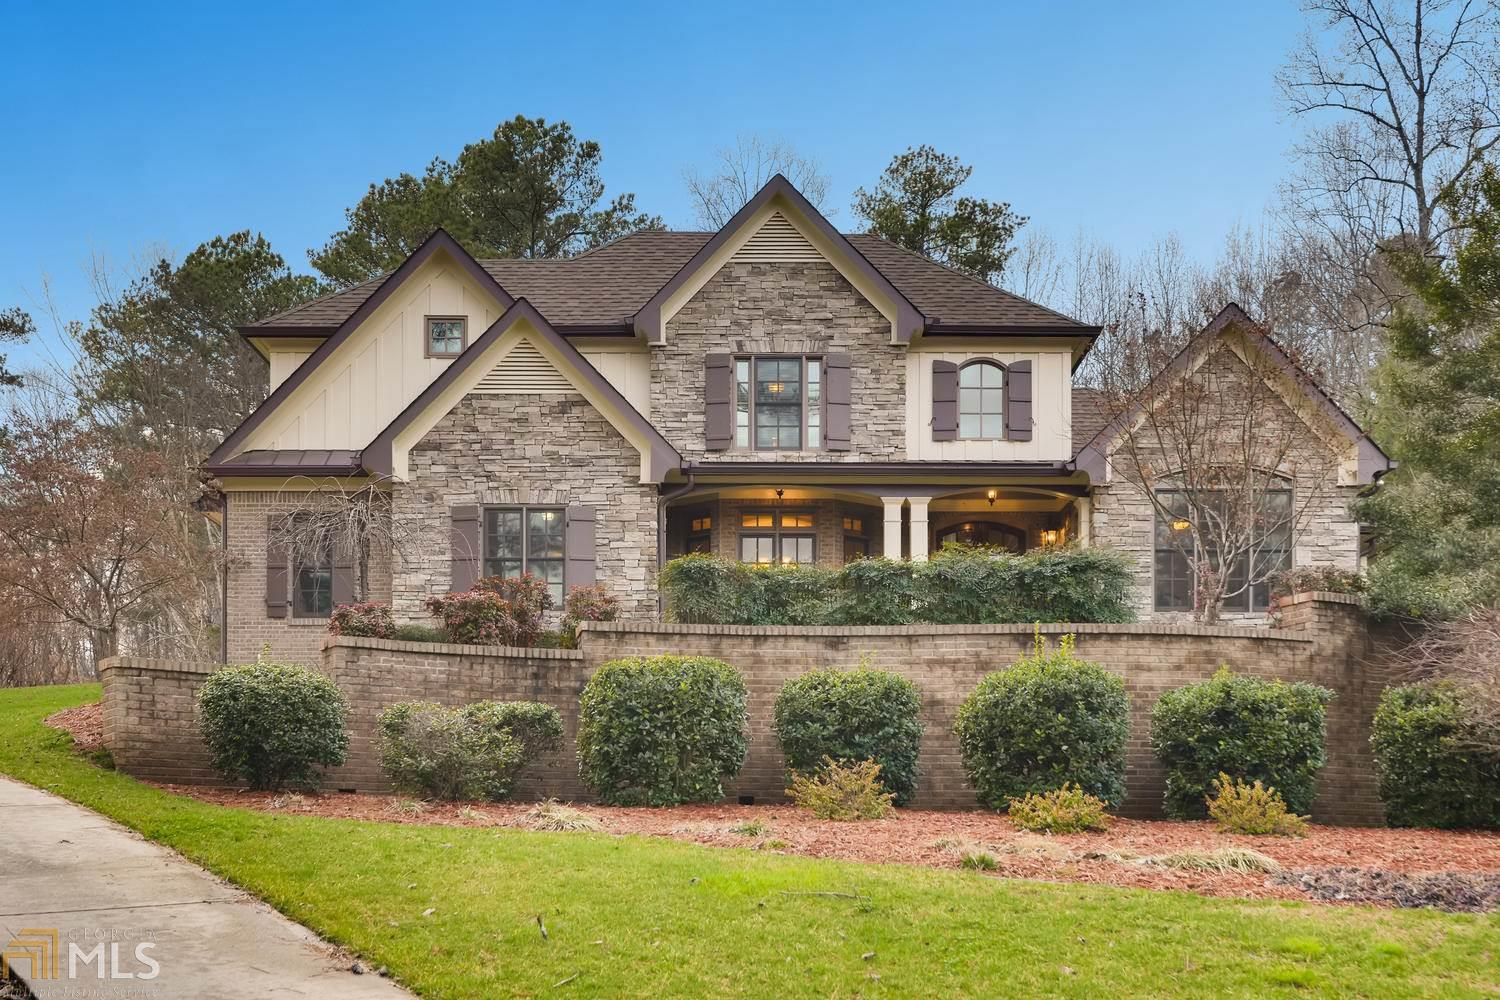 9500 River Lake Dr, Roswell, GA 30075